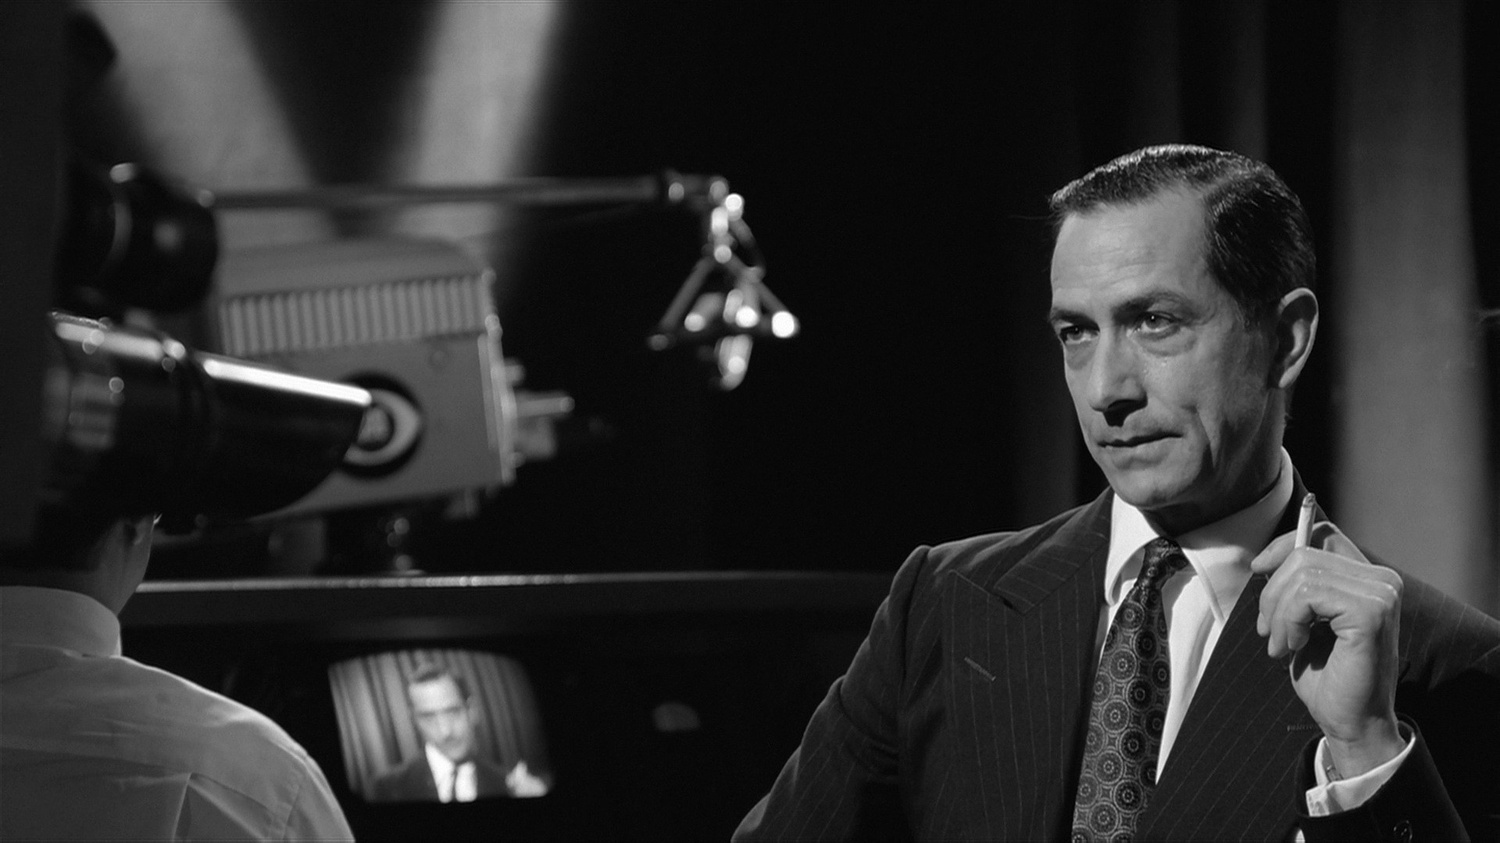 """David Strathairn stars as Edward Murrow in """"Good Night, and Good Luck"""" (2005), directed by George Clooney."""